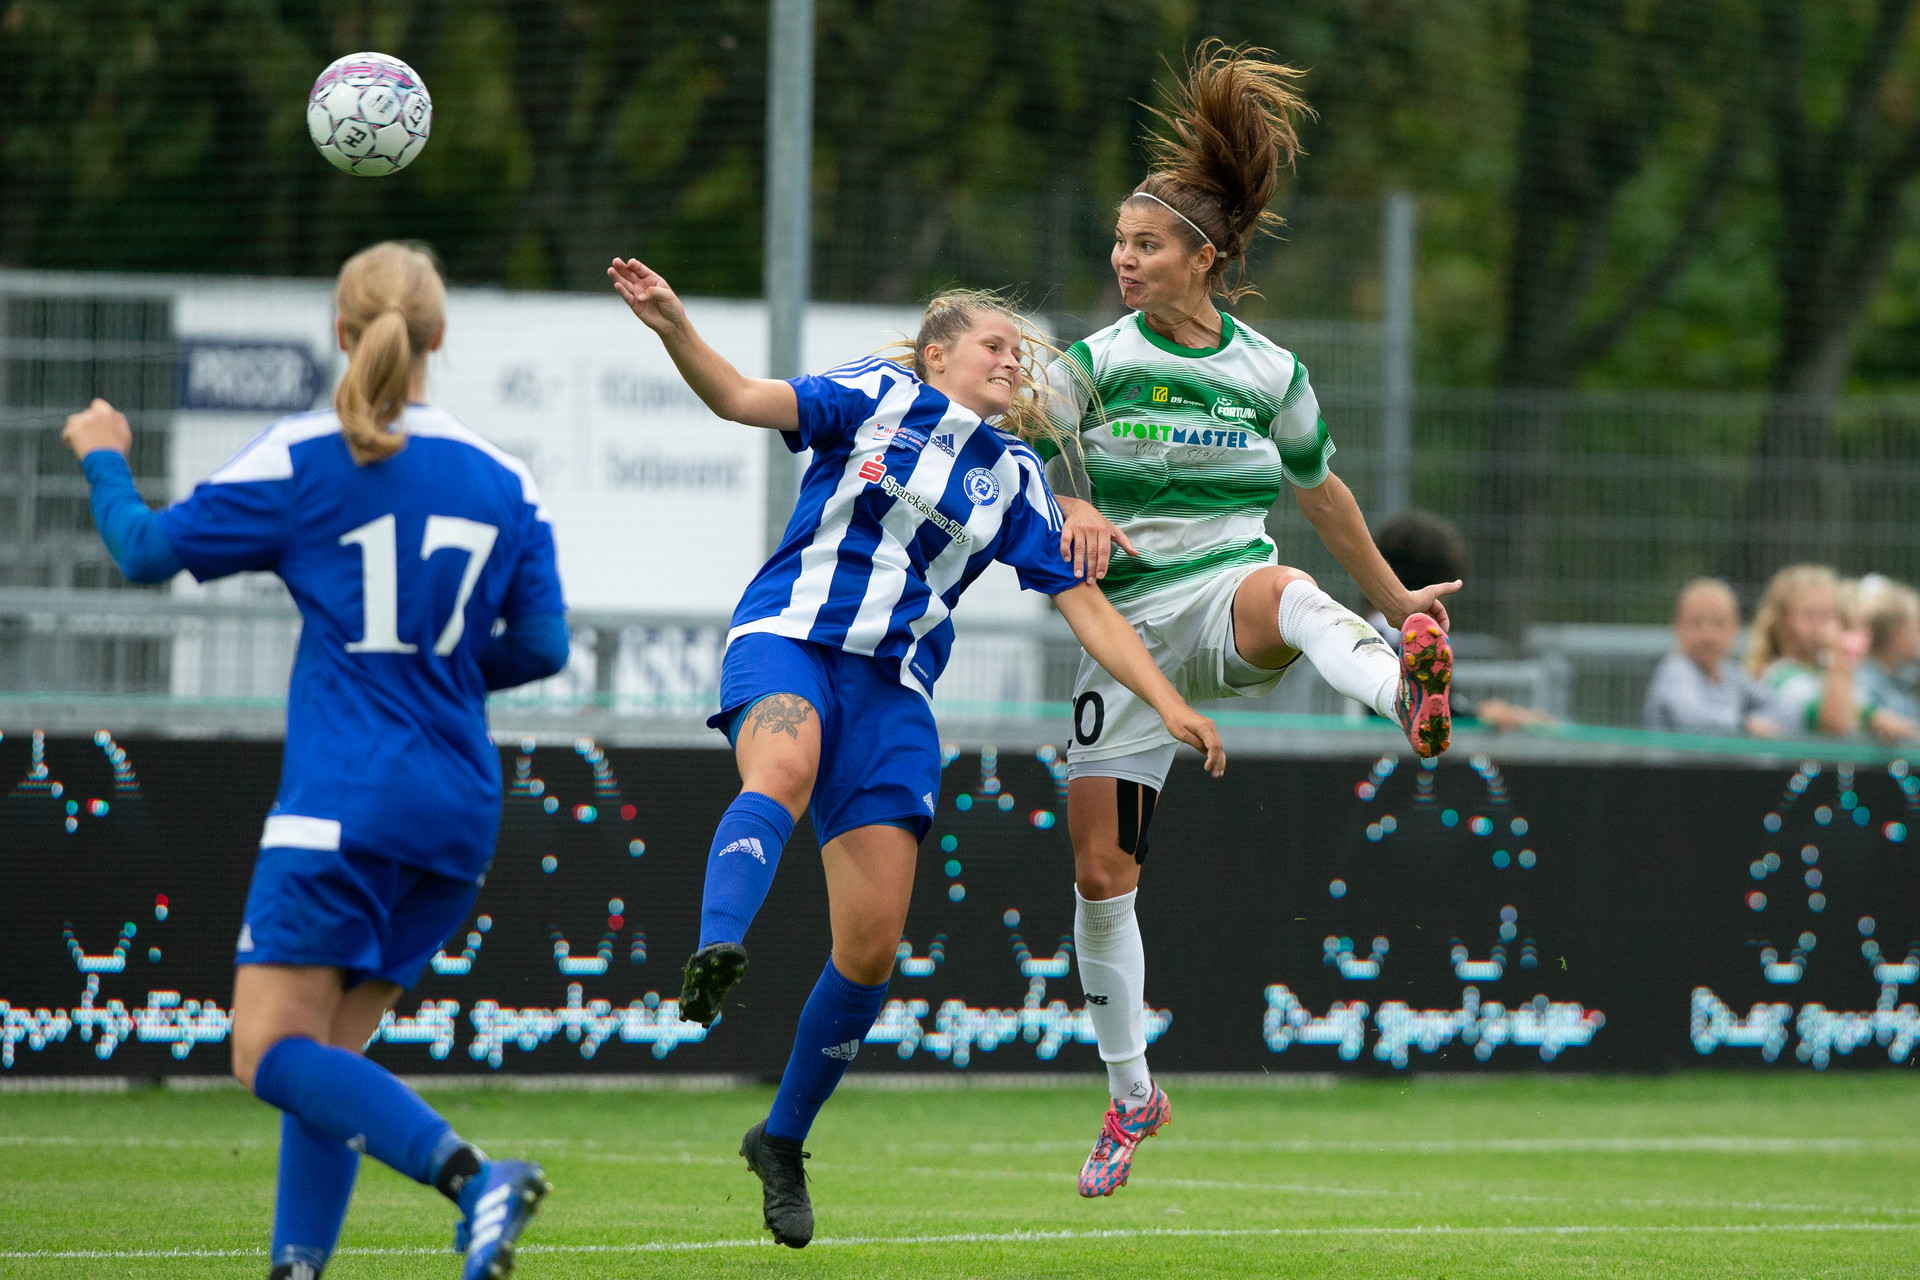 Signe Bruun, young striker from Fortuna Hjørring, has now moved to European giant Paris-SG